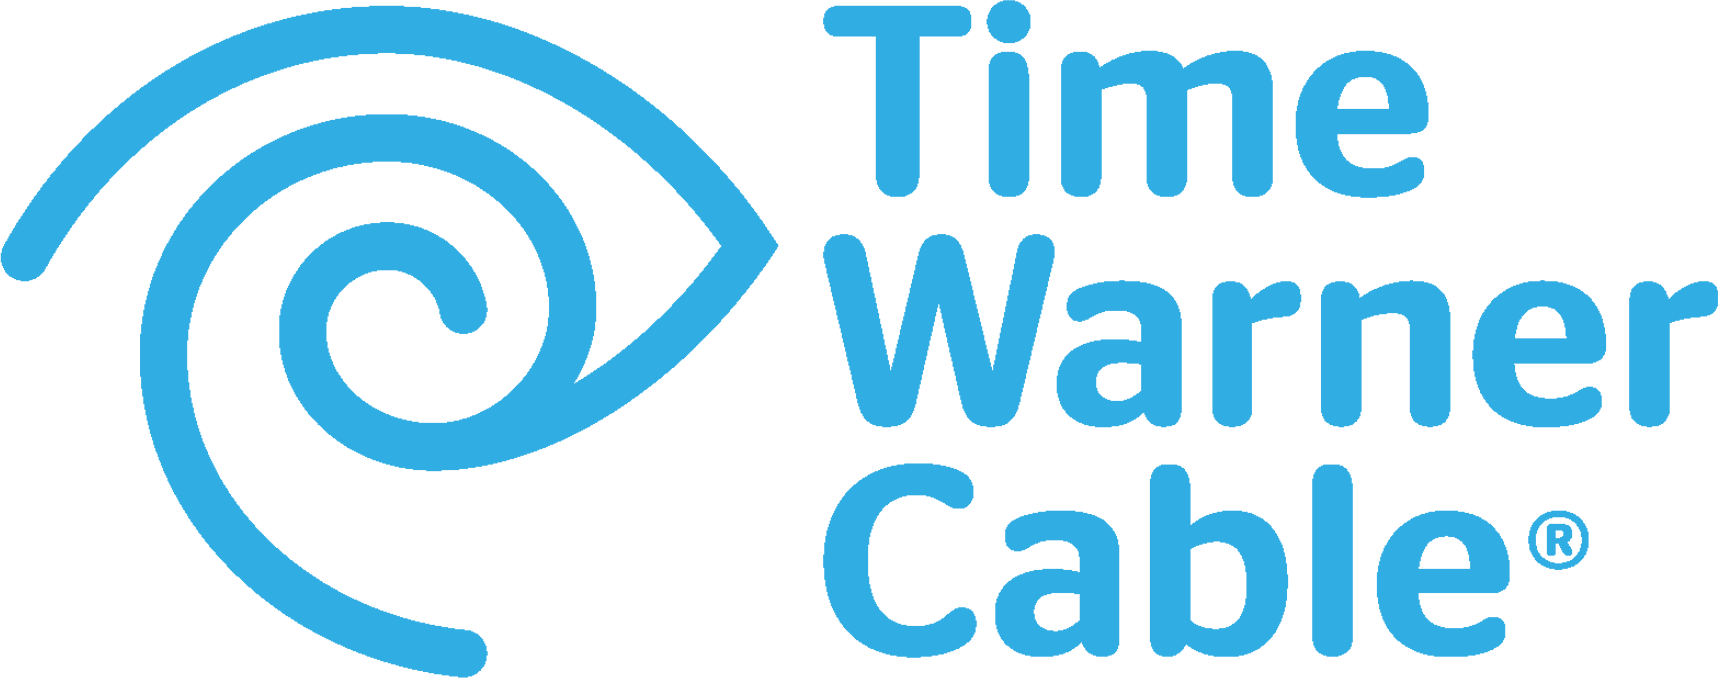 an introduction to the history of the time warner cable Integration of time inc and warner communications produced time warner comcast and time warner cable operate on a continuous scale of production lit history shakespeare.